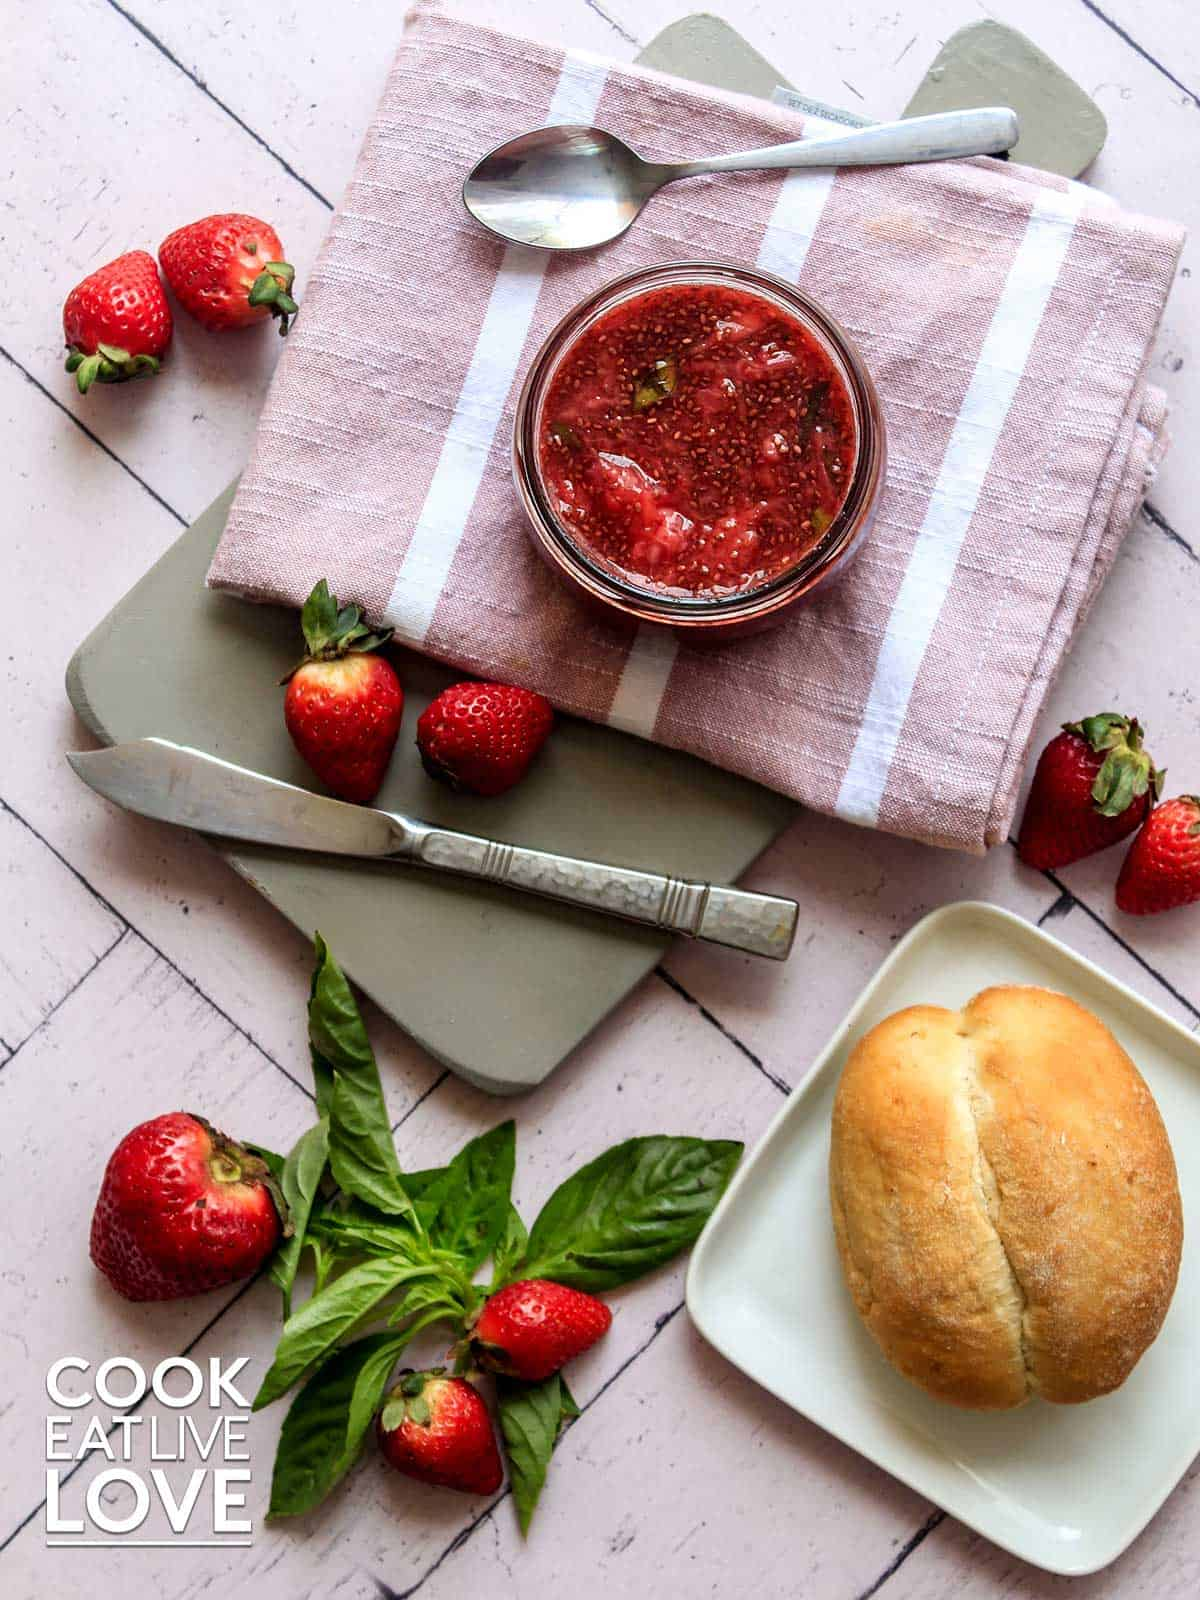 Jar of strawberry jam on a cutting board with fresh bread an whole strawberries